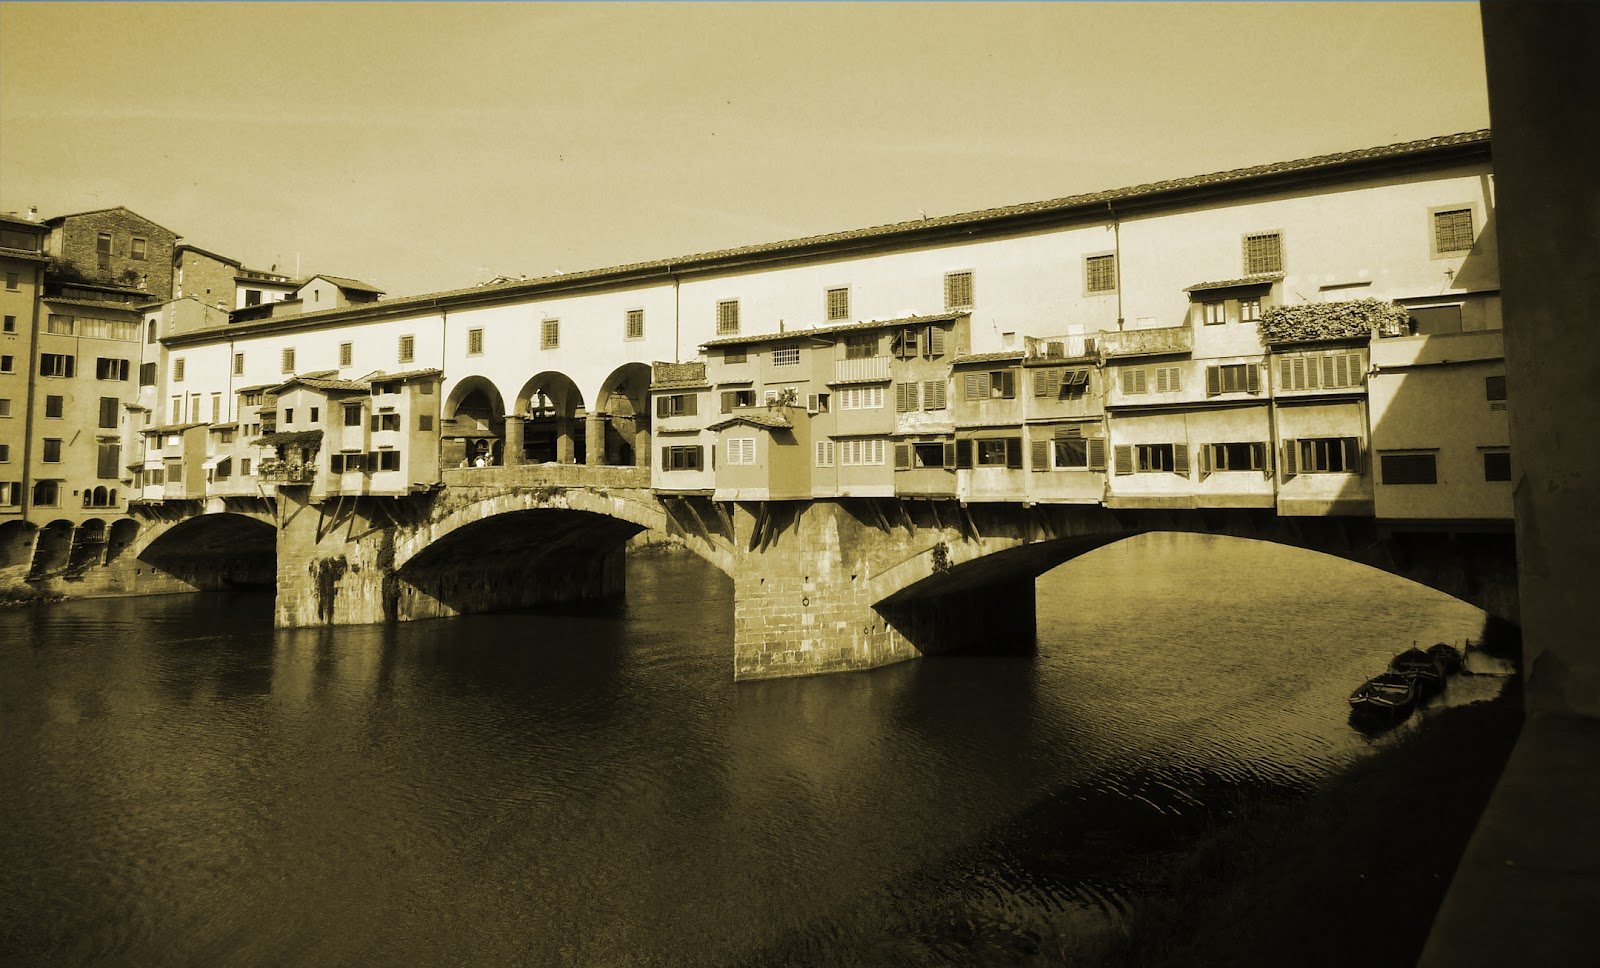 firenze senior personals Accommodation in each home is for a minimum of three nights, for singles or two people travelling together how it came about that, between the years 1400 and 1500, italy.